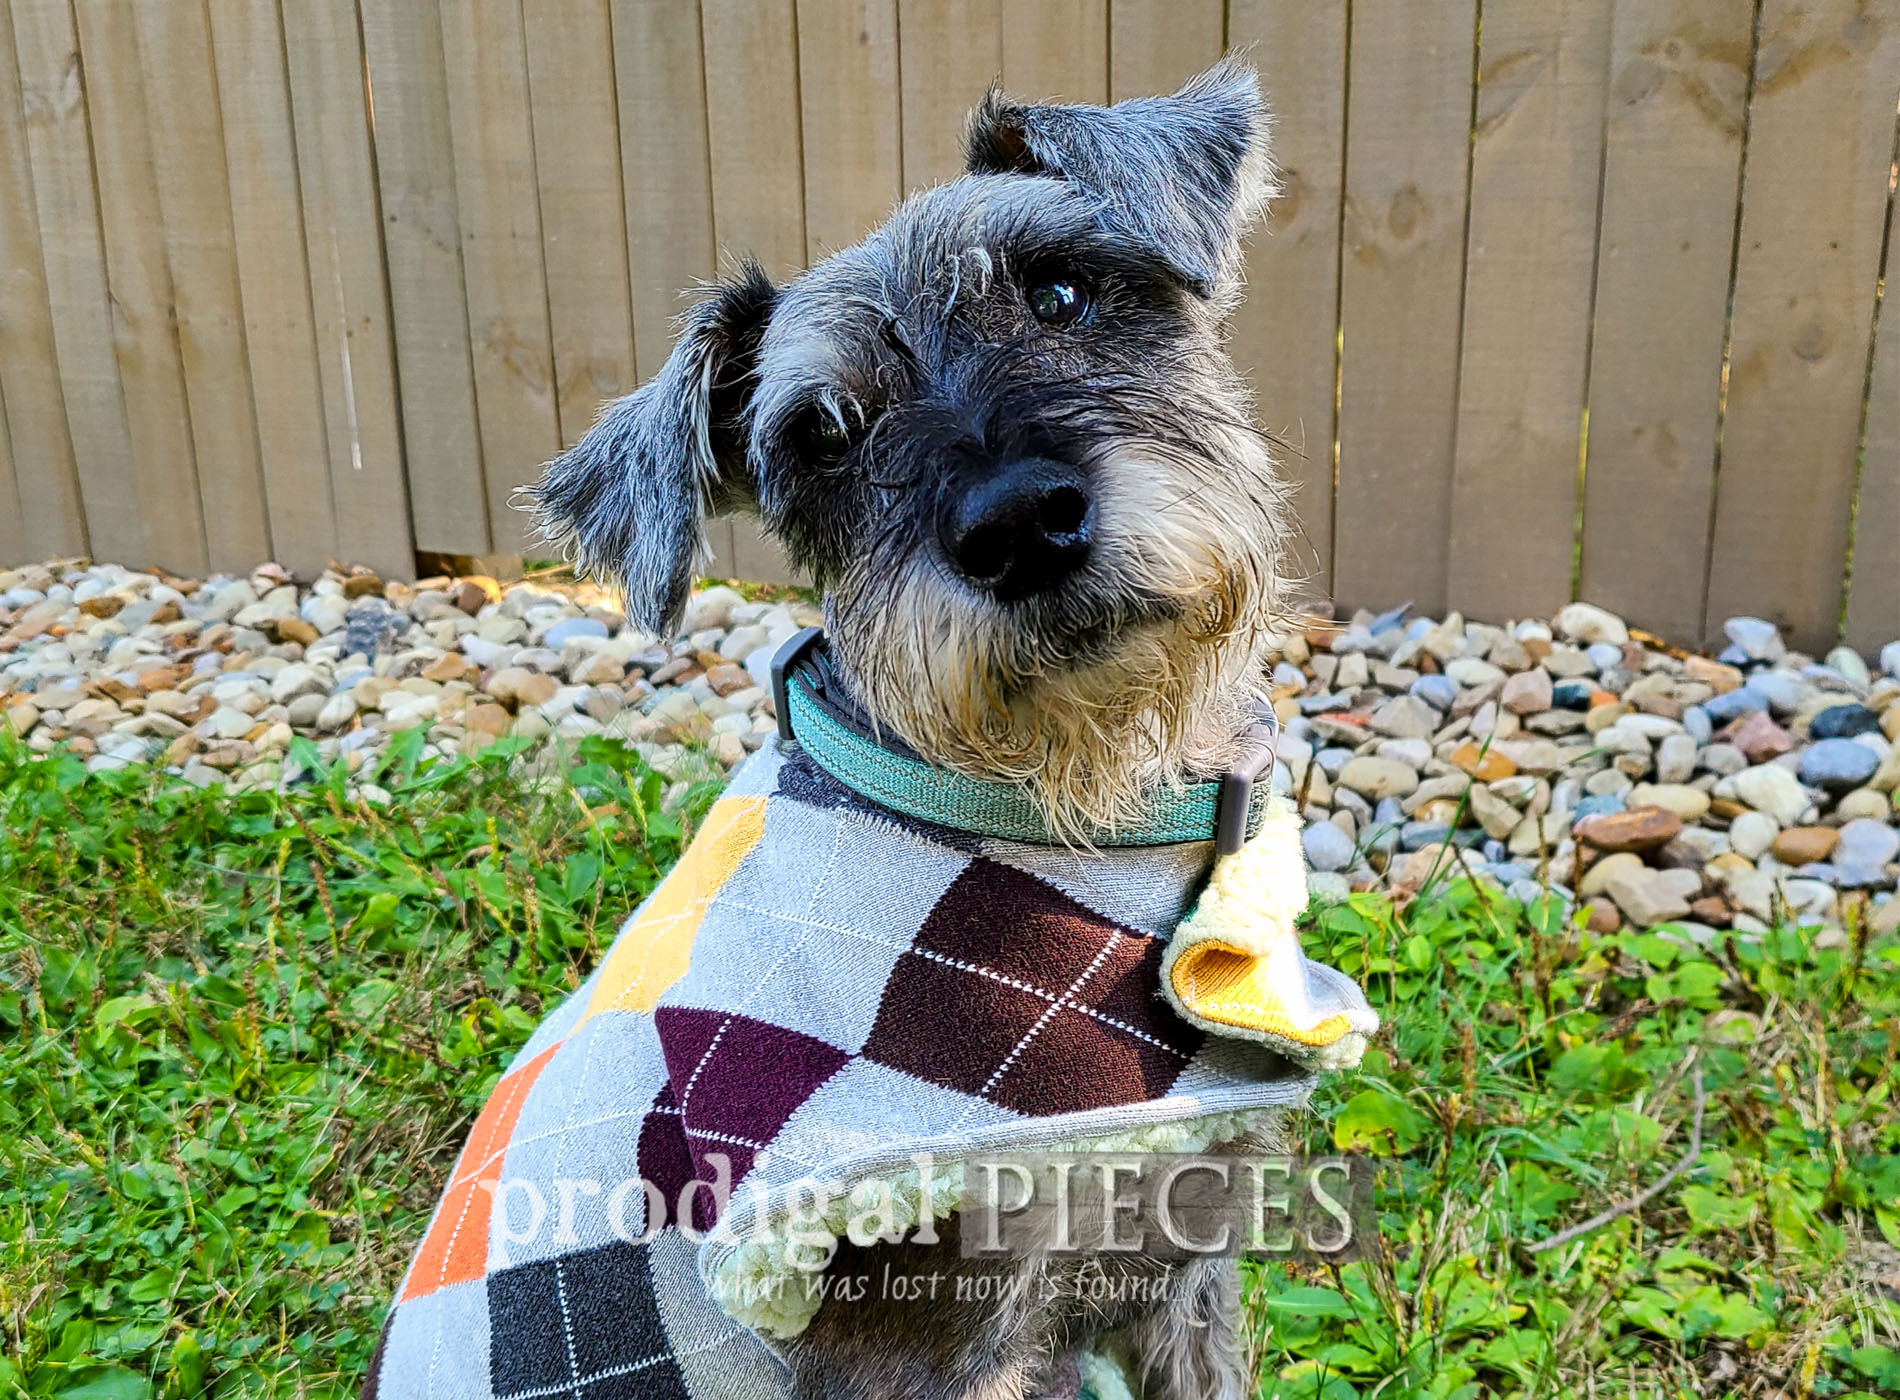 Featured DIY Dog Coat from Upcycled Sweaters by Larissa of Prodigal Pieces | prodigalpieces.com #prodigalpieces #diy #pets #dogs #handmade #sewing